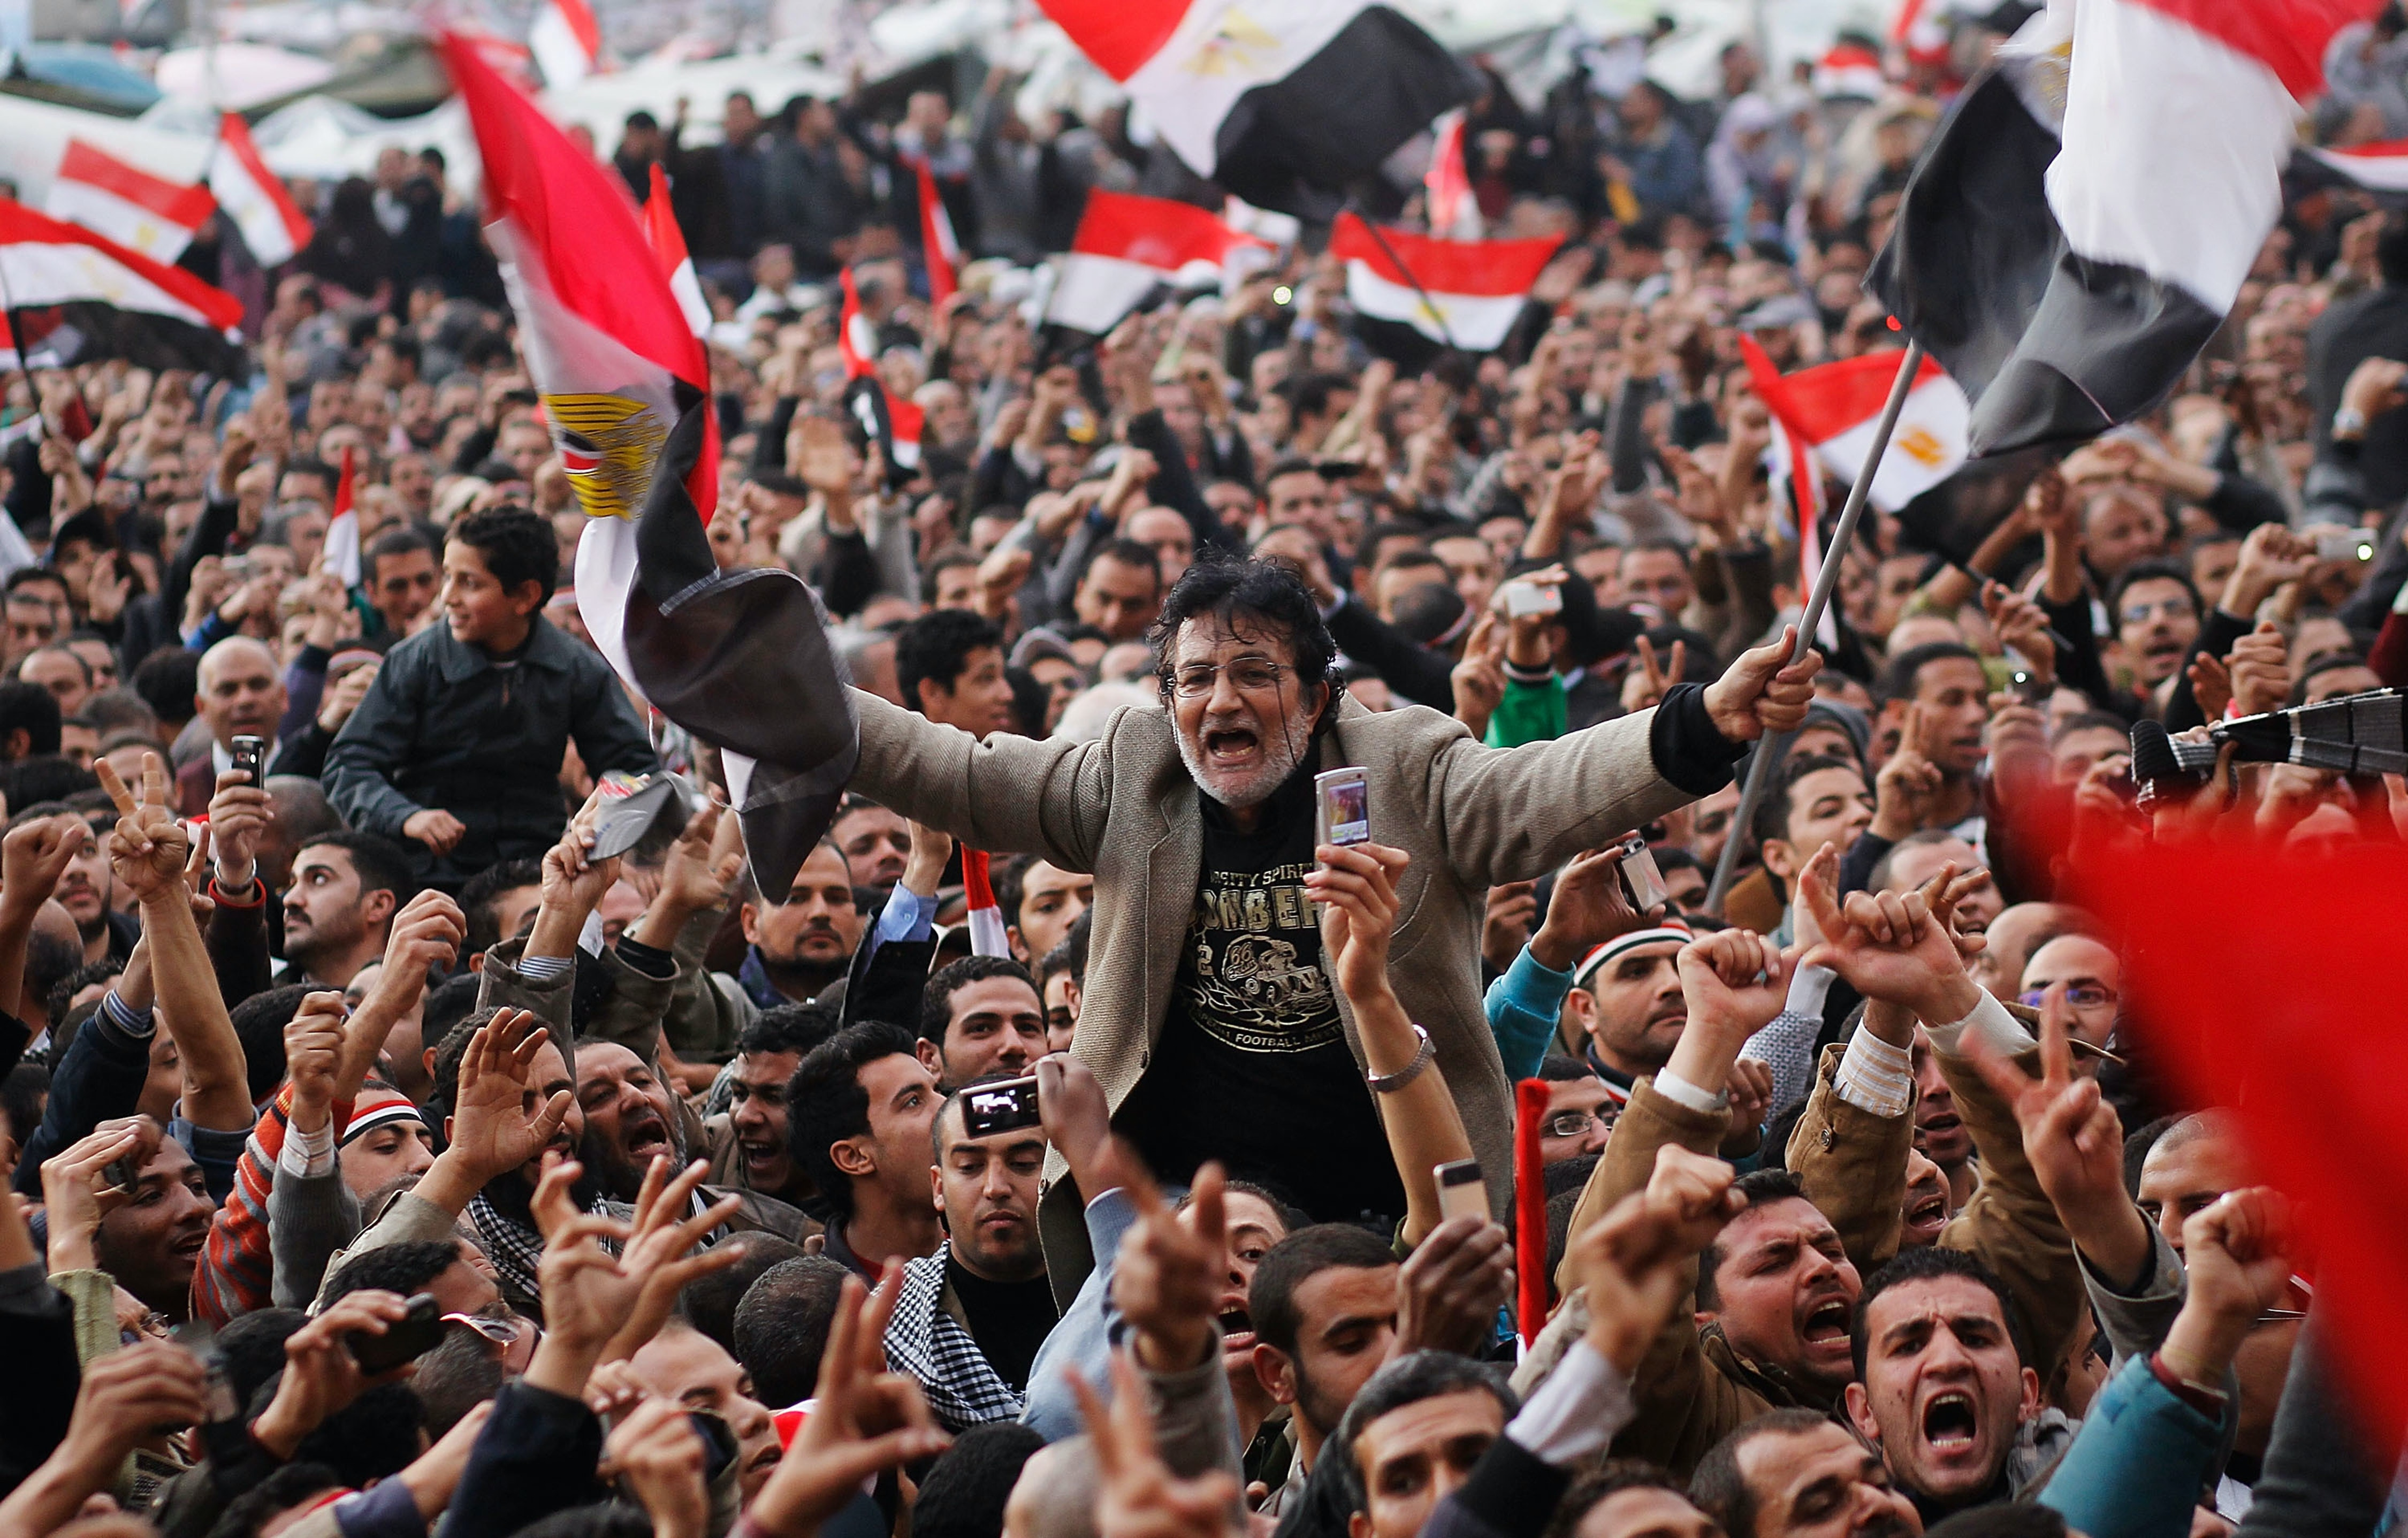 An anti-government protester is carried on shoulders in the afternoon before a speech by Egyptian President Hosni Mubarak in Tahrir Square February 10, 2011 in Cairo, Egypt.